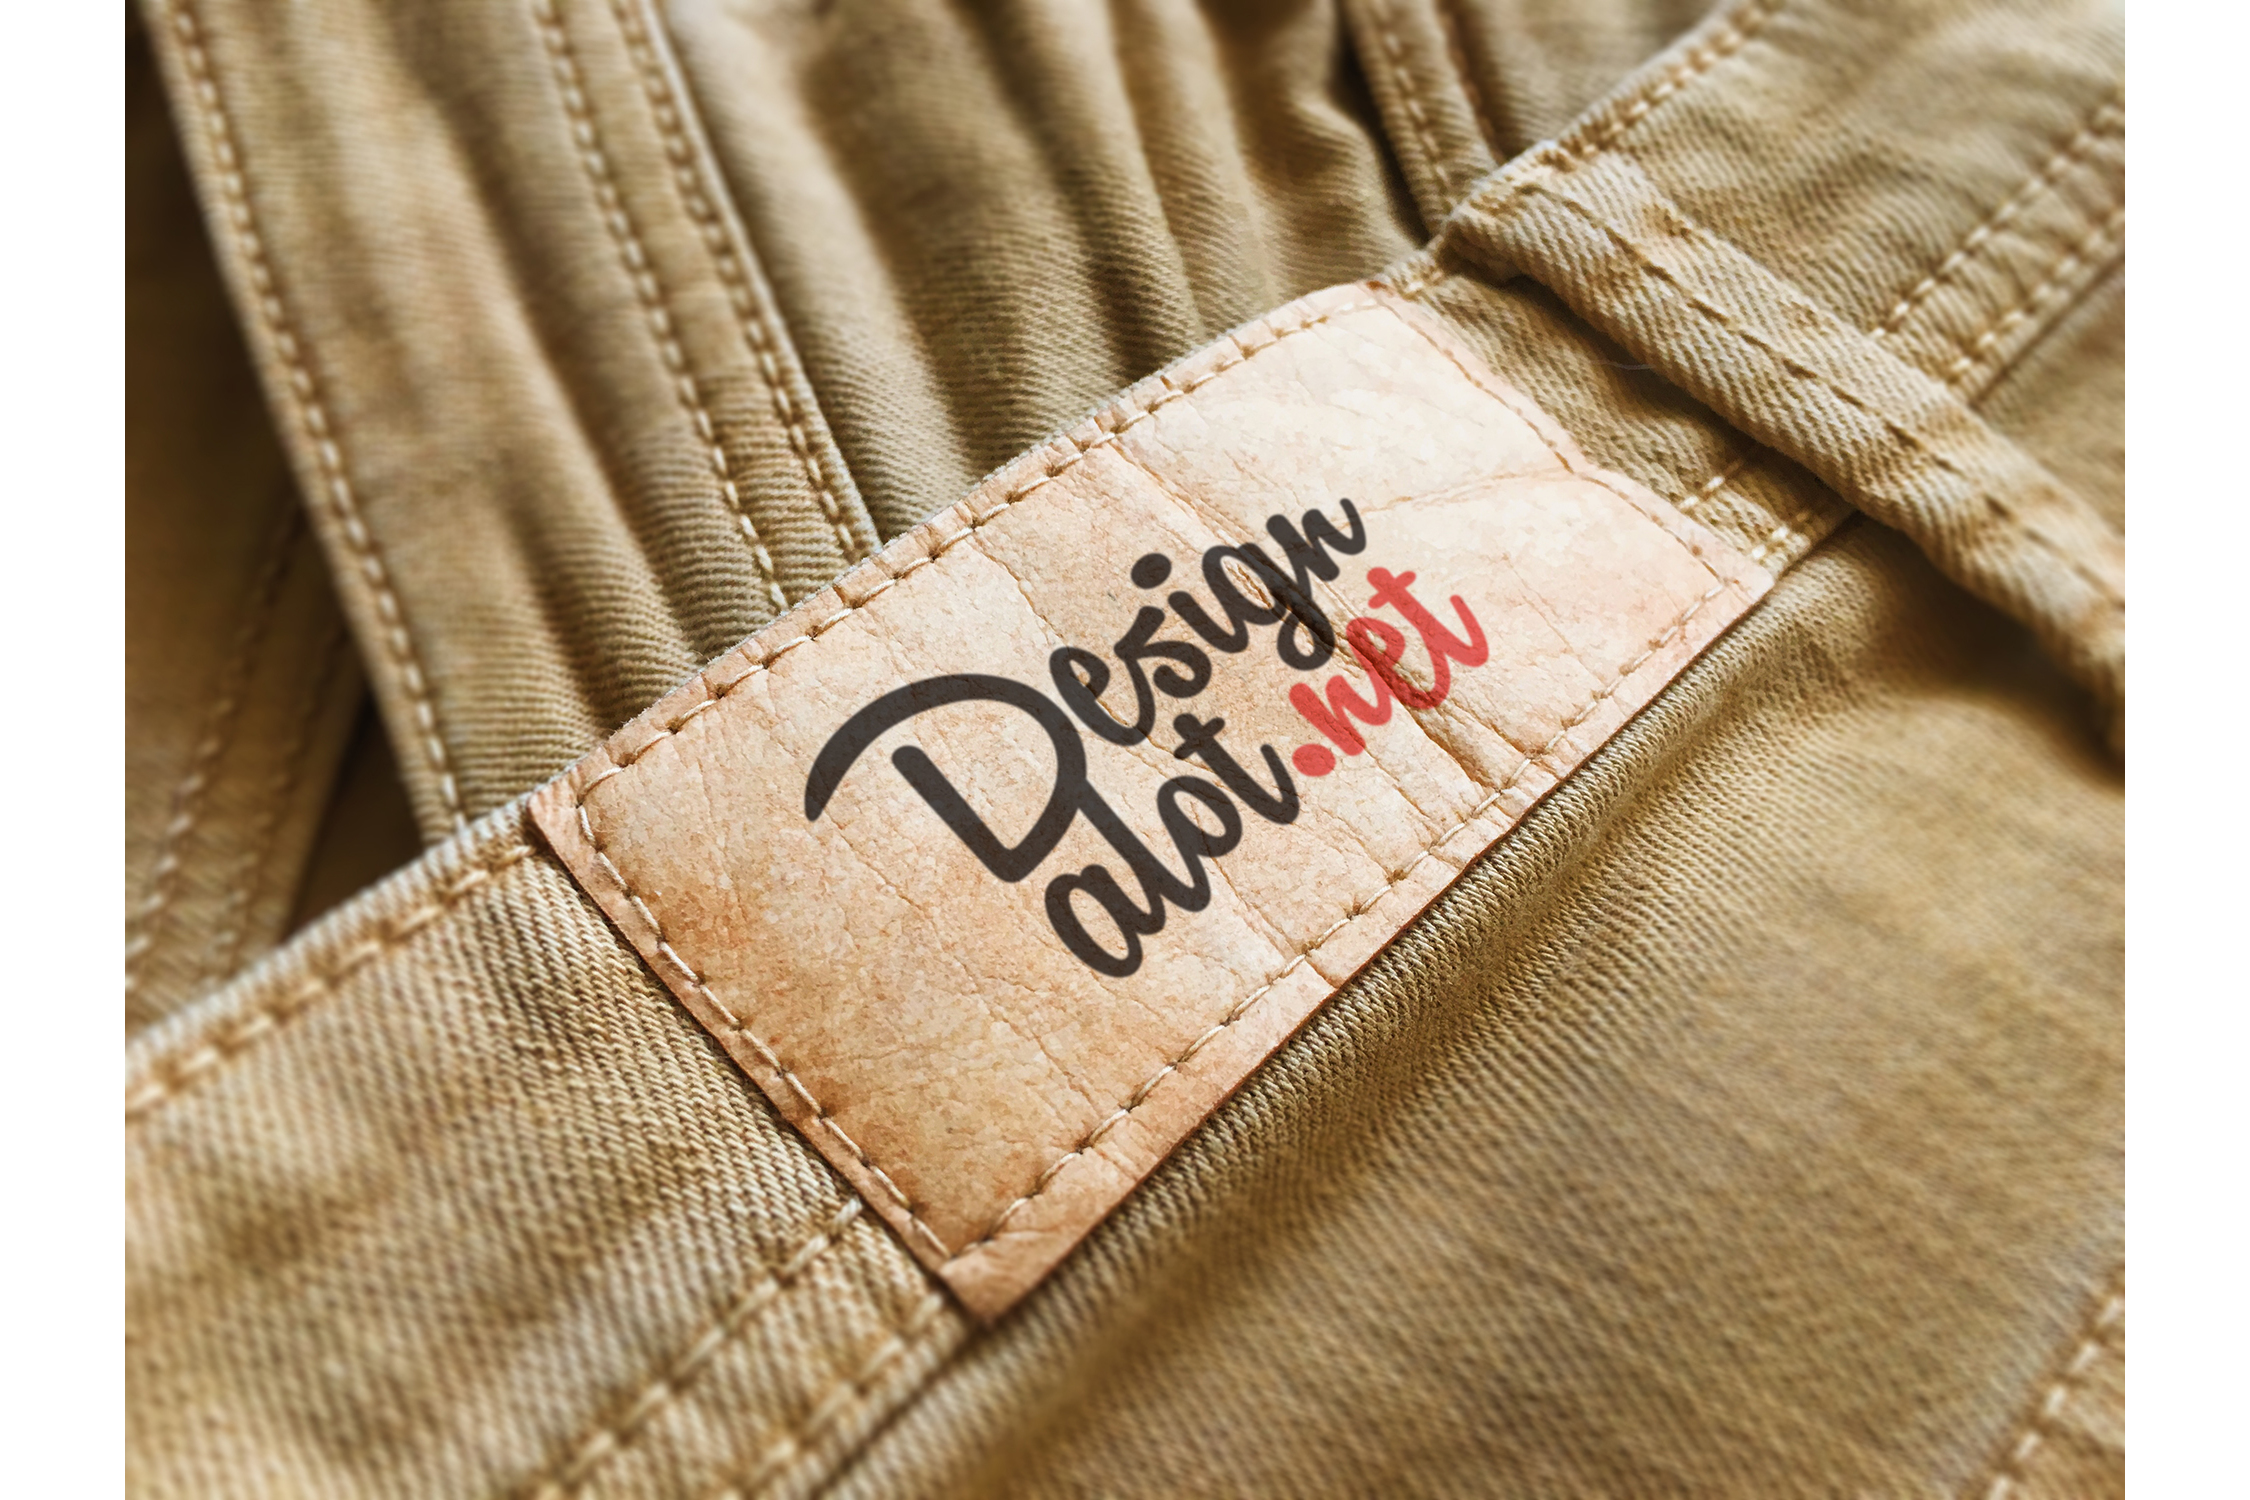 7 Jeans and Pants Label Mockups example image 6